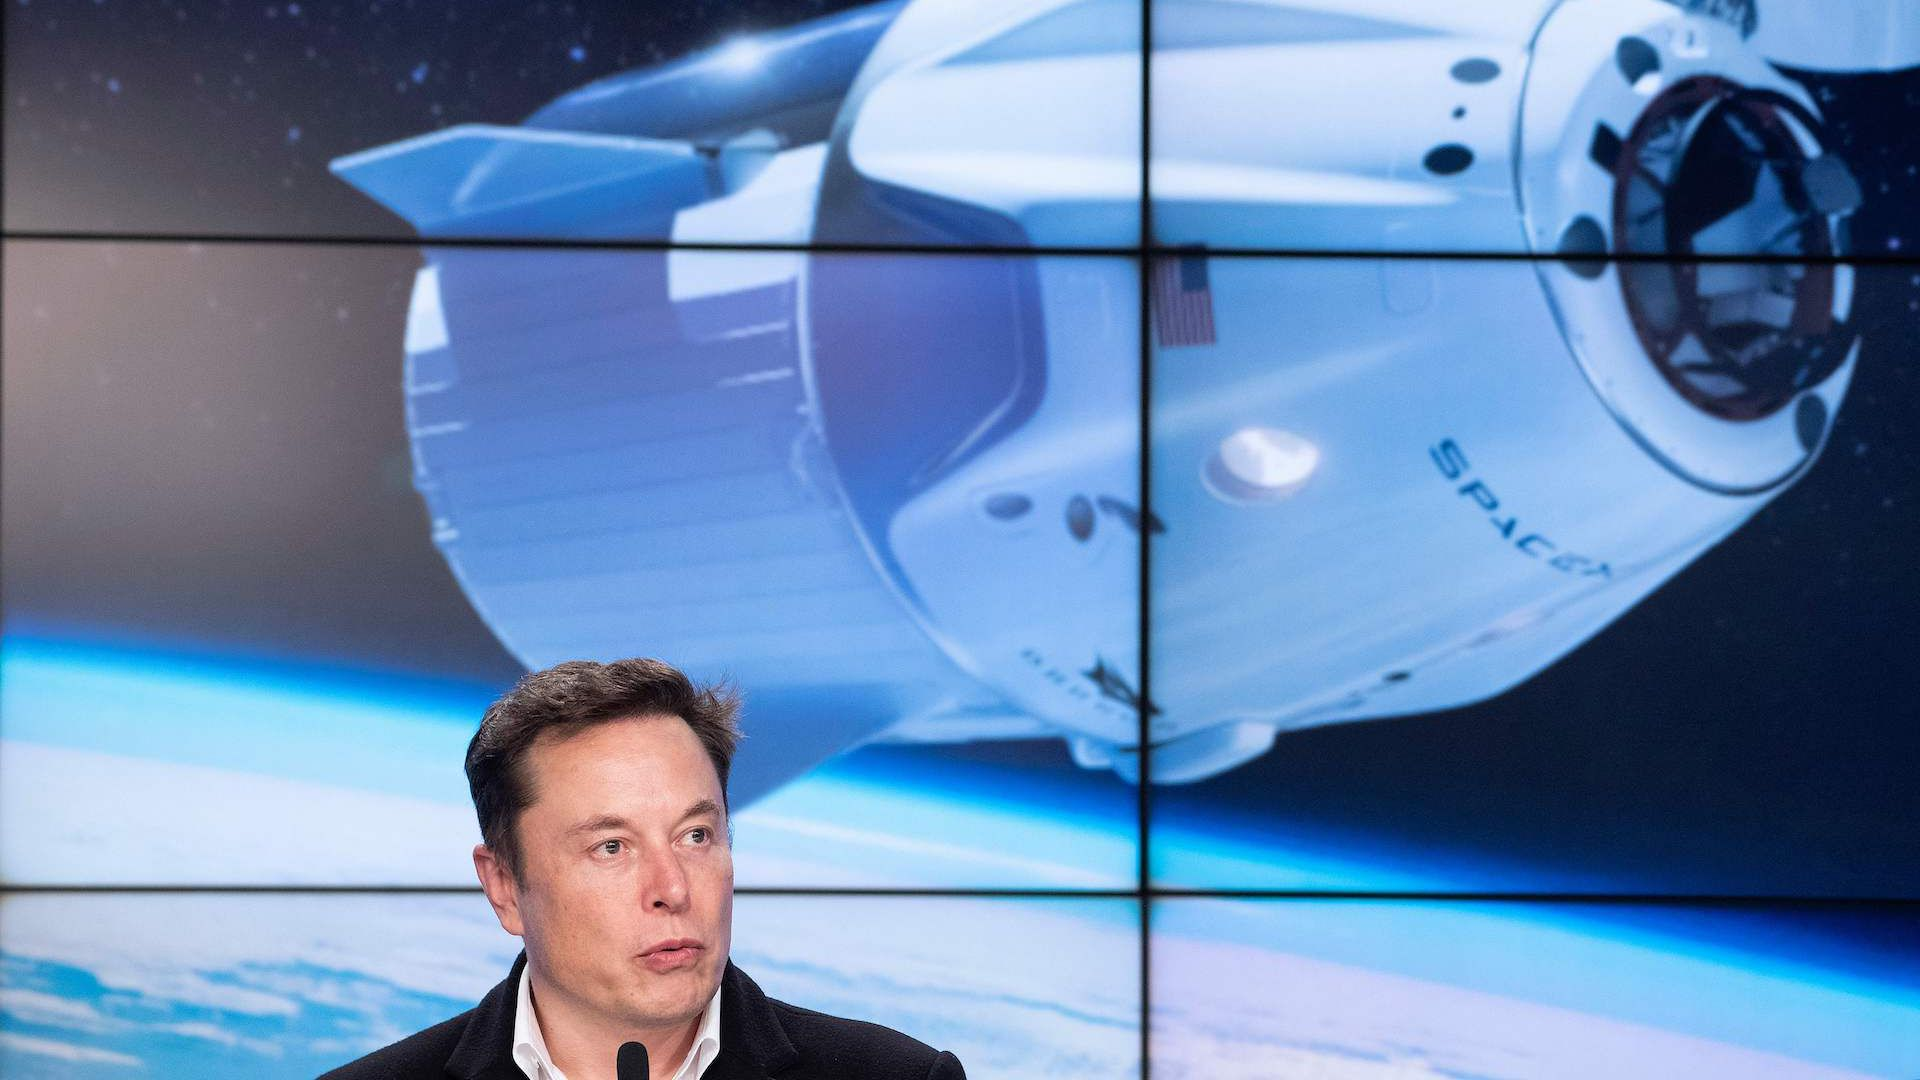 SpaceX CEO Elon Musk holds a press conference about his company's Crew Dragon spacecraft.